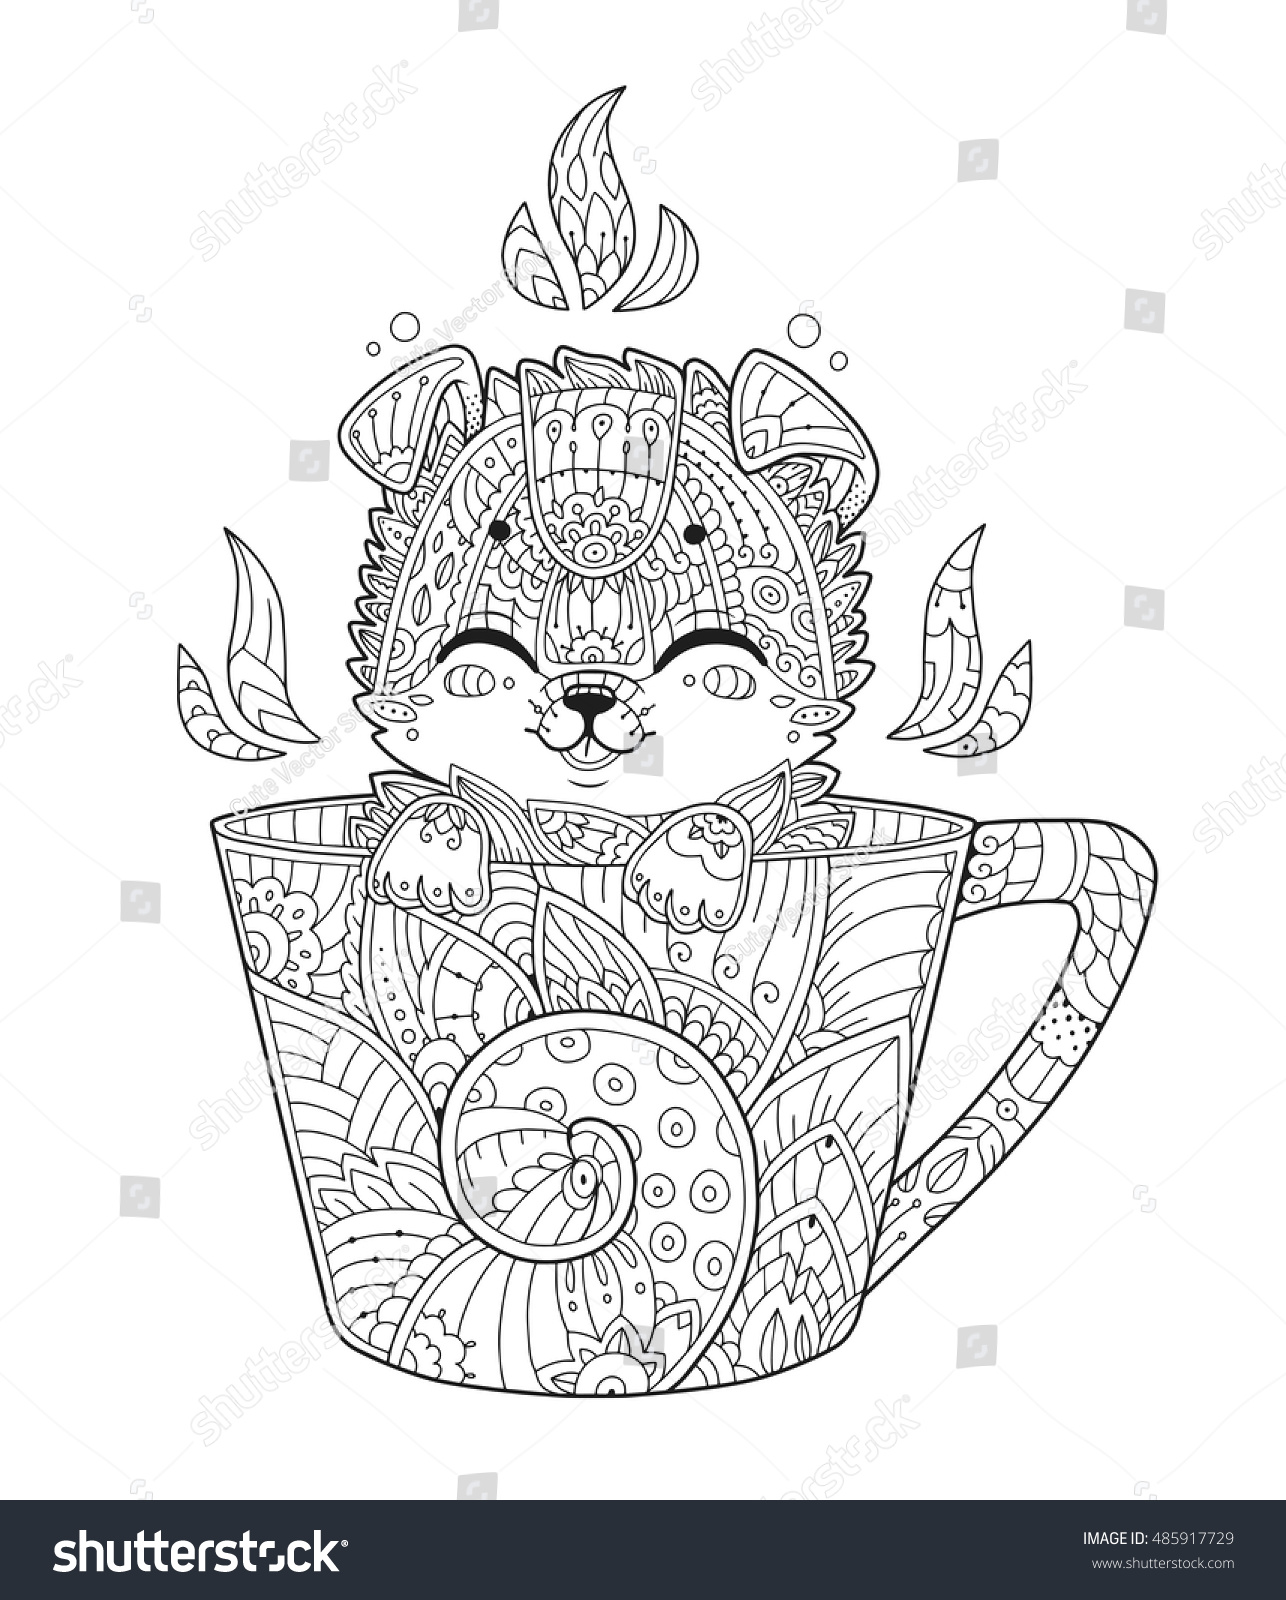 puppy cup antistress coloring page stock vector 485917729